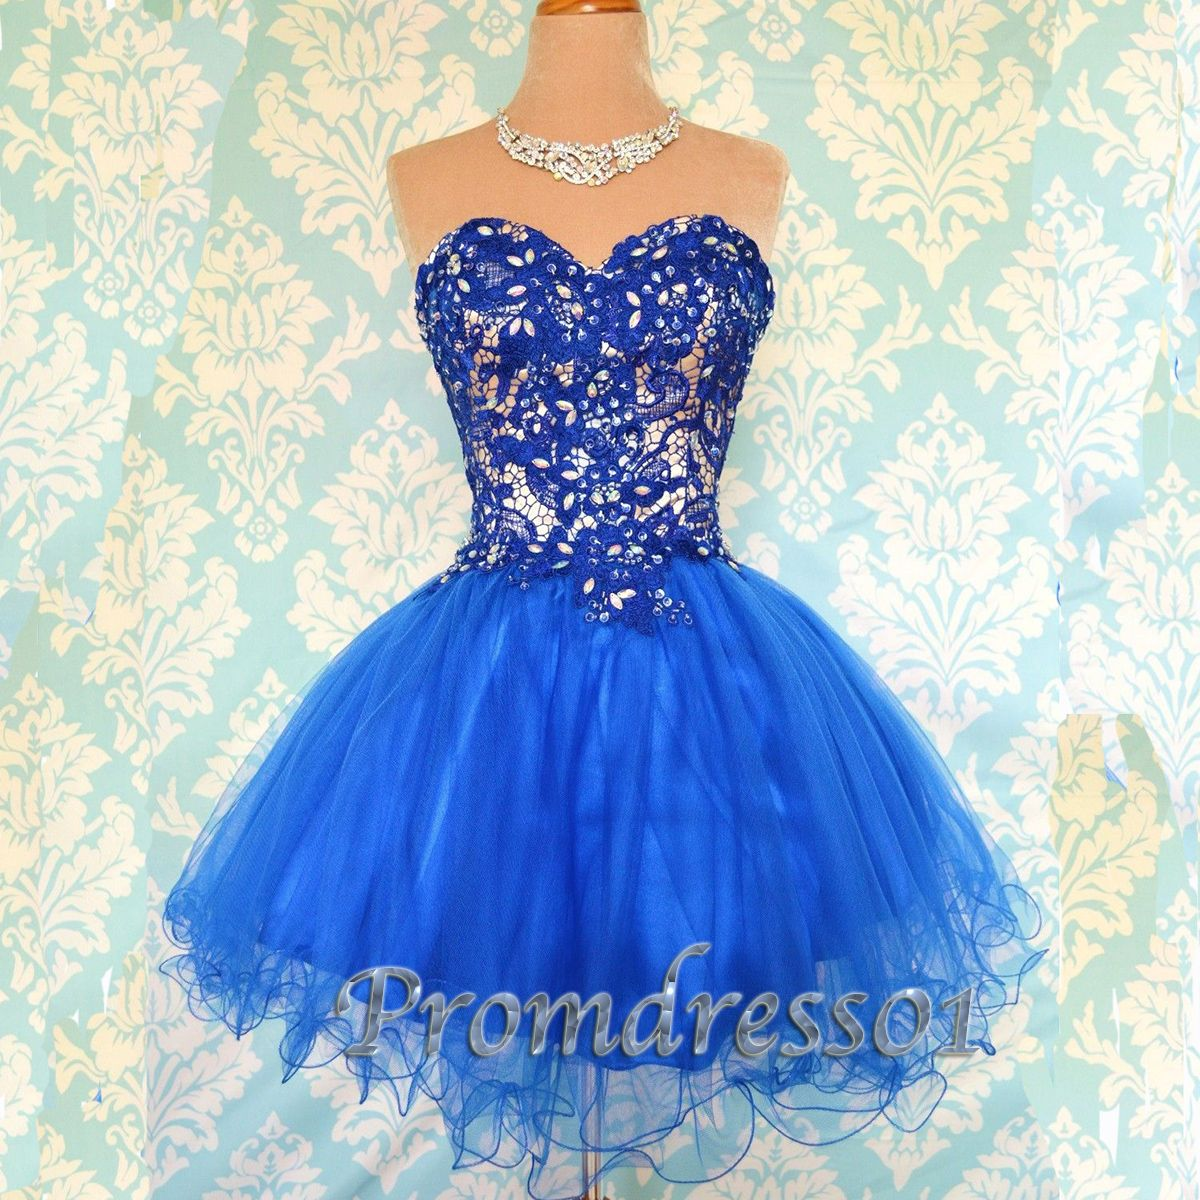 royal tutu look blue sweetheart short slim prom dress for